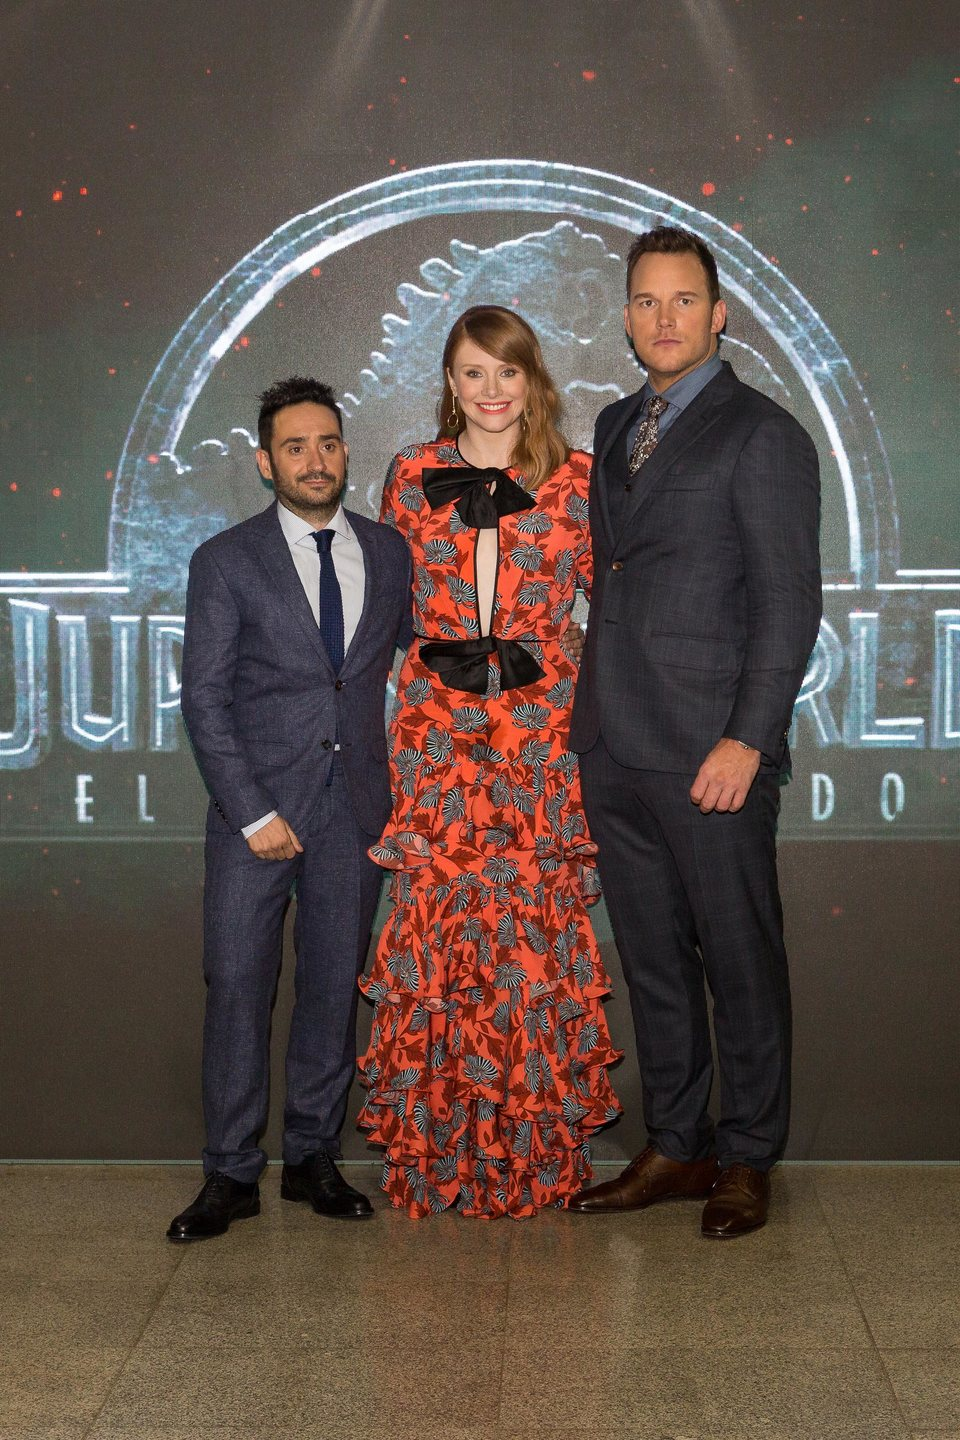 ¿Cuánto mide Juan Antonio J.A Bayona?  - Altura - Real height - Página 3 96972_j-a-bayona-bryce-dallas-howard-chris-pratt-premiere-mundial-jurassic-world-el-reino-caido-madrid